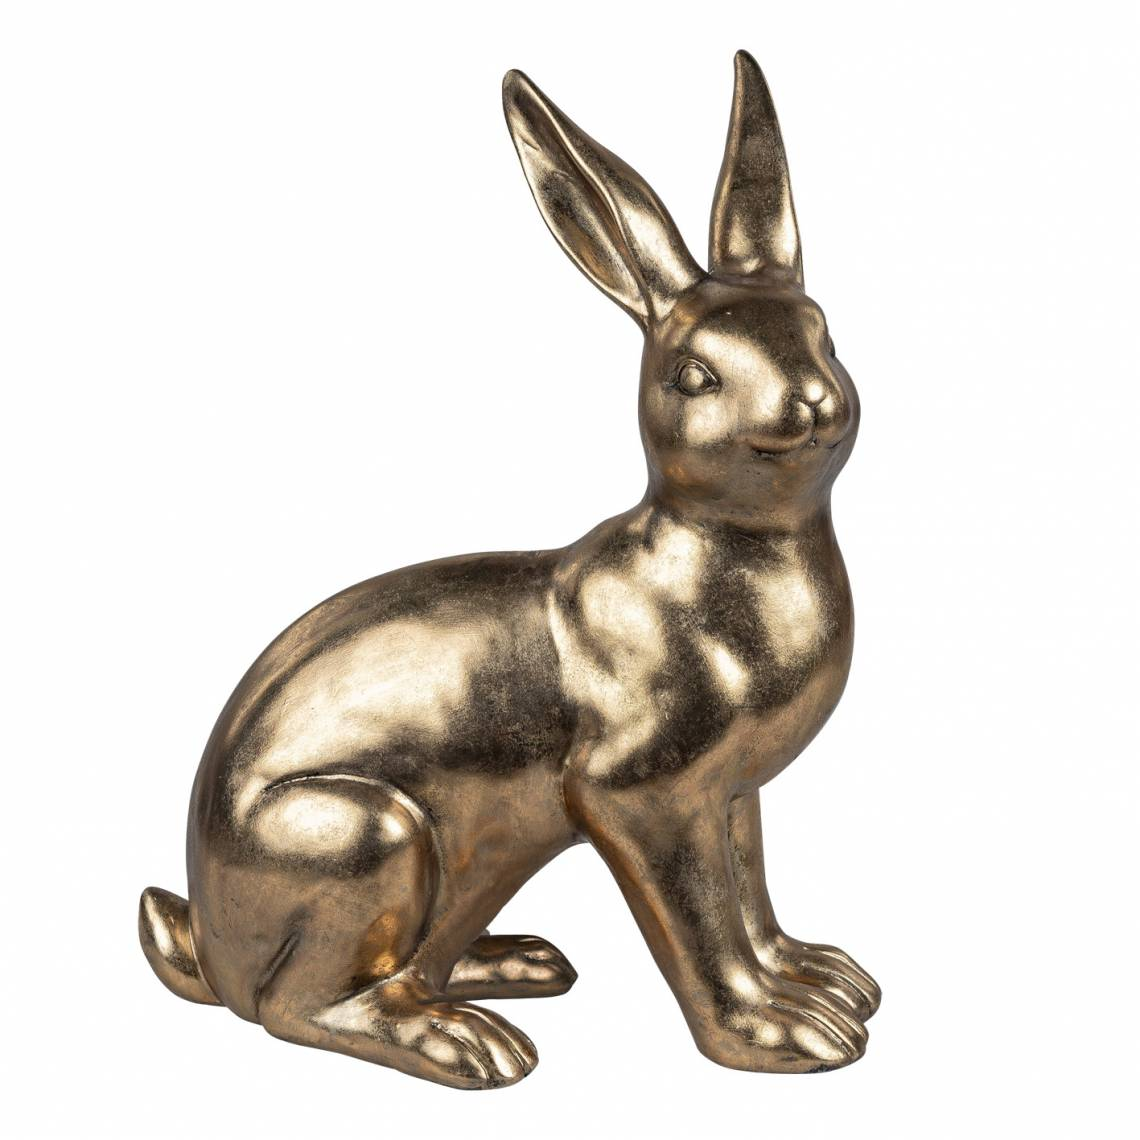 formano/ostern-gold2021-hase-mit-gold-720733